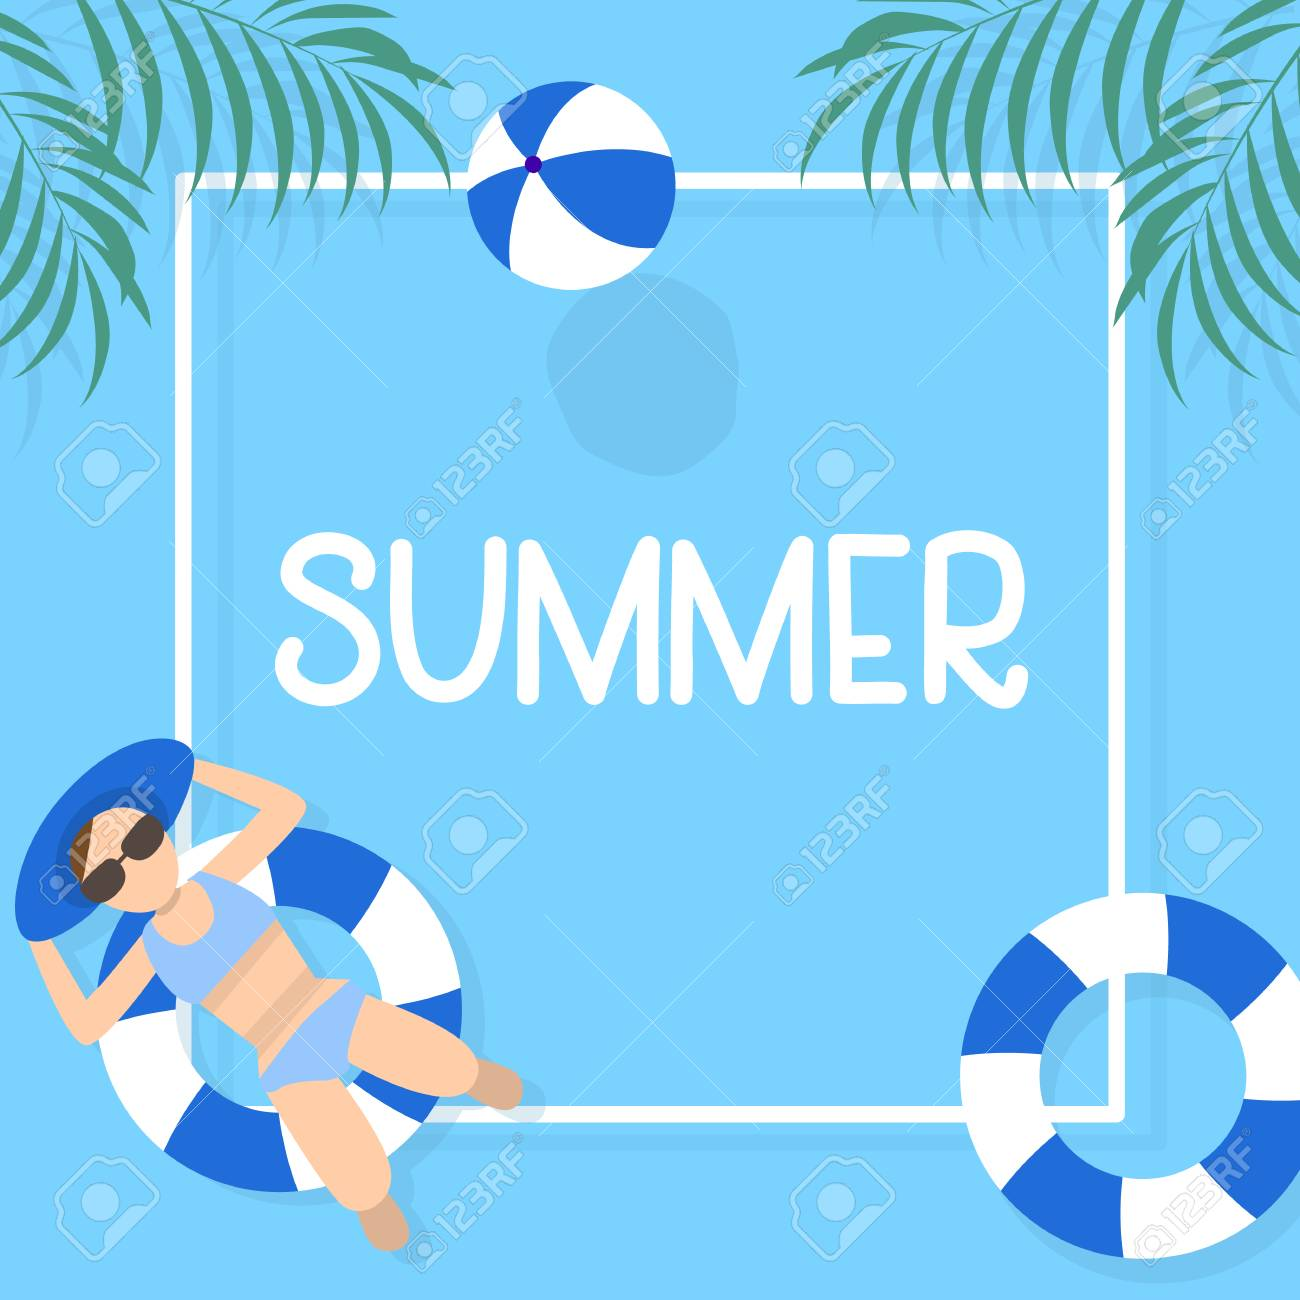 summer time background design with pool blue water and people playing ball can be use